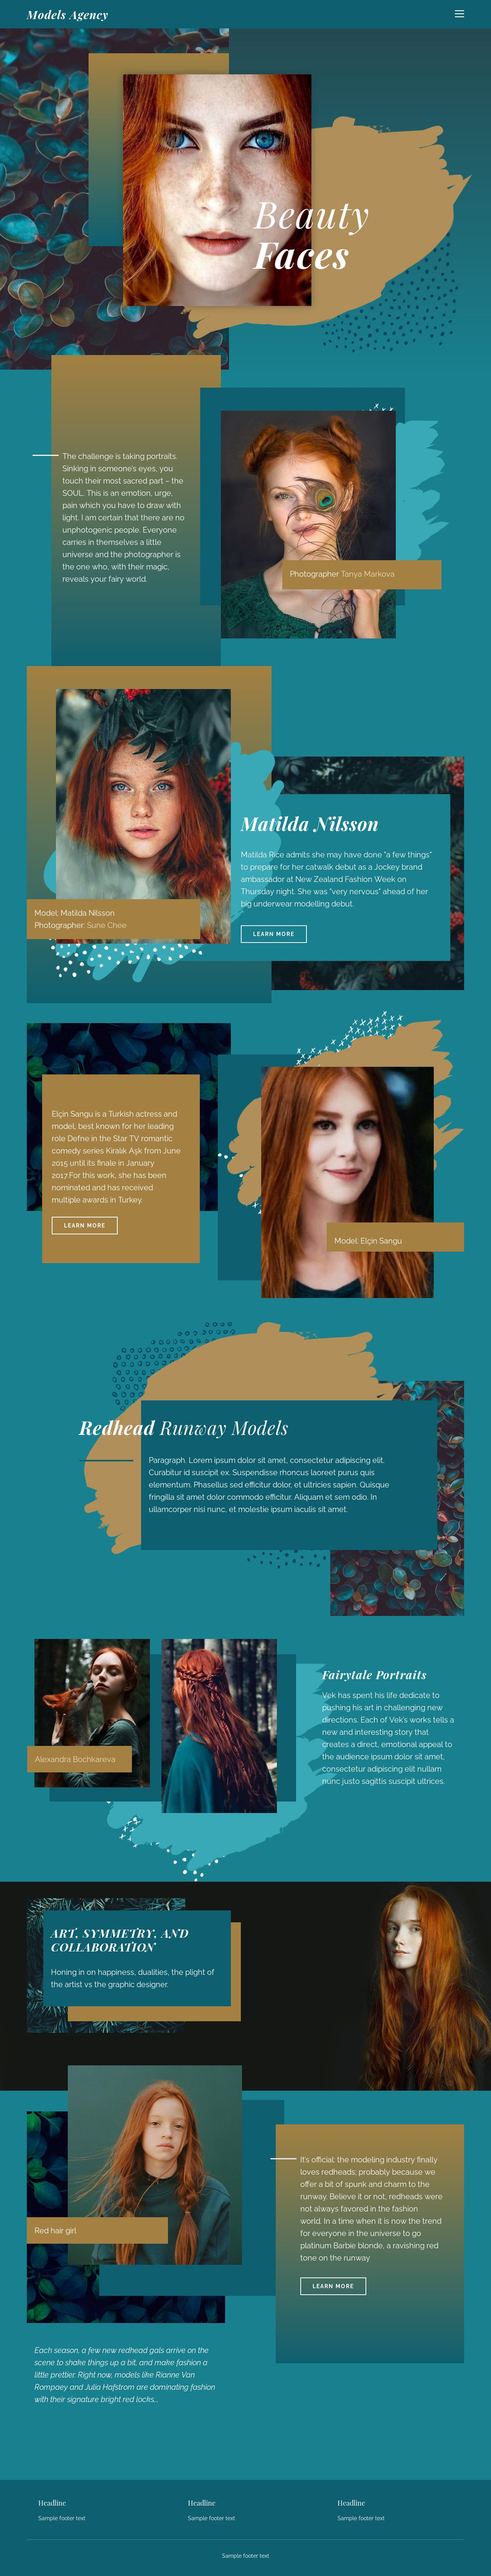 Faces of modern fashion Website Builder Software